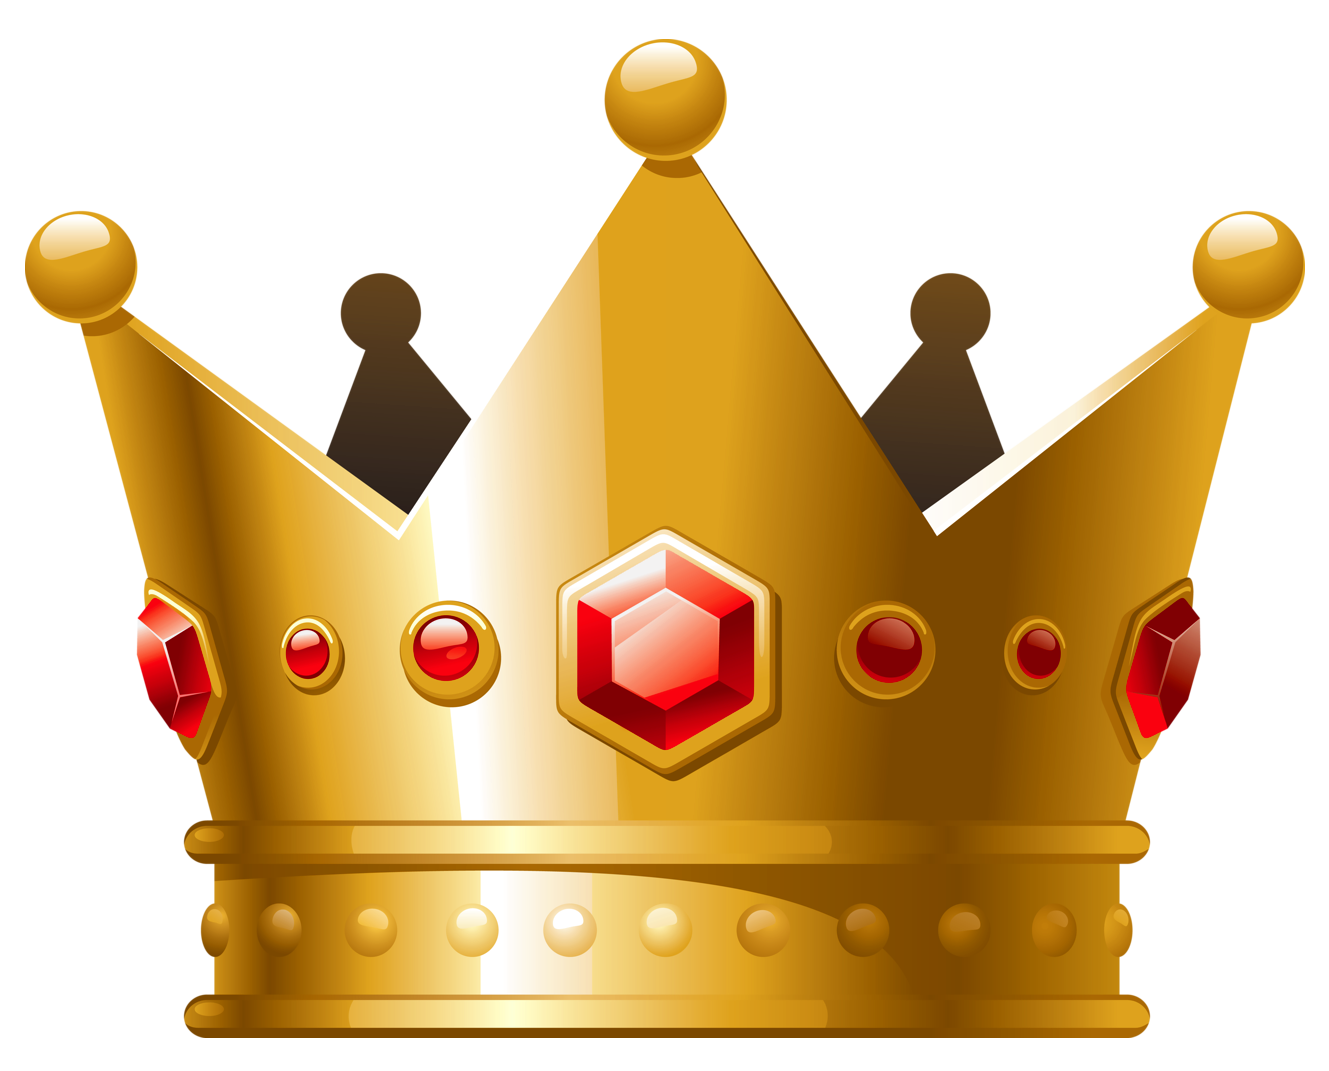 Festival clipart renaissance fair. Gold crown with red